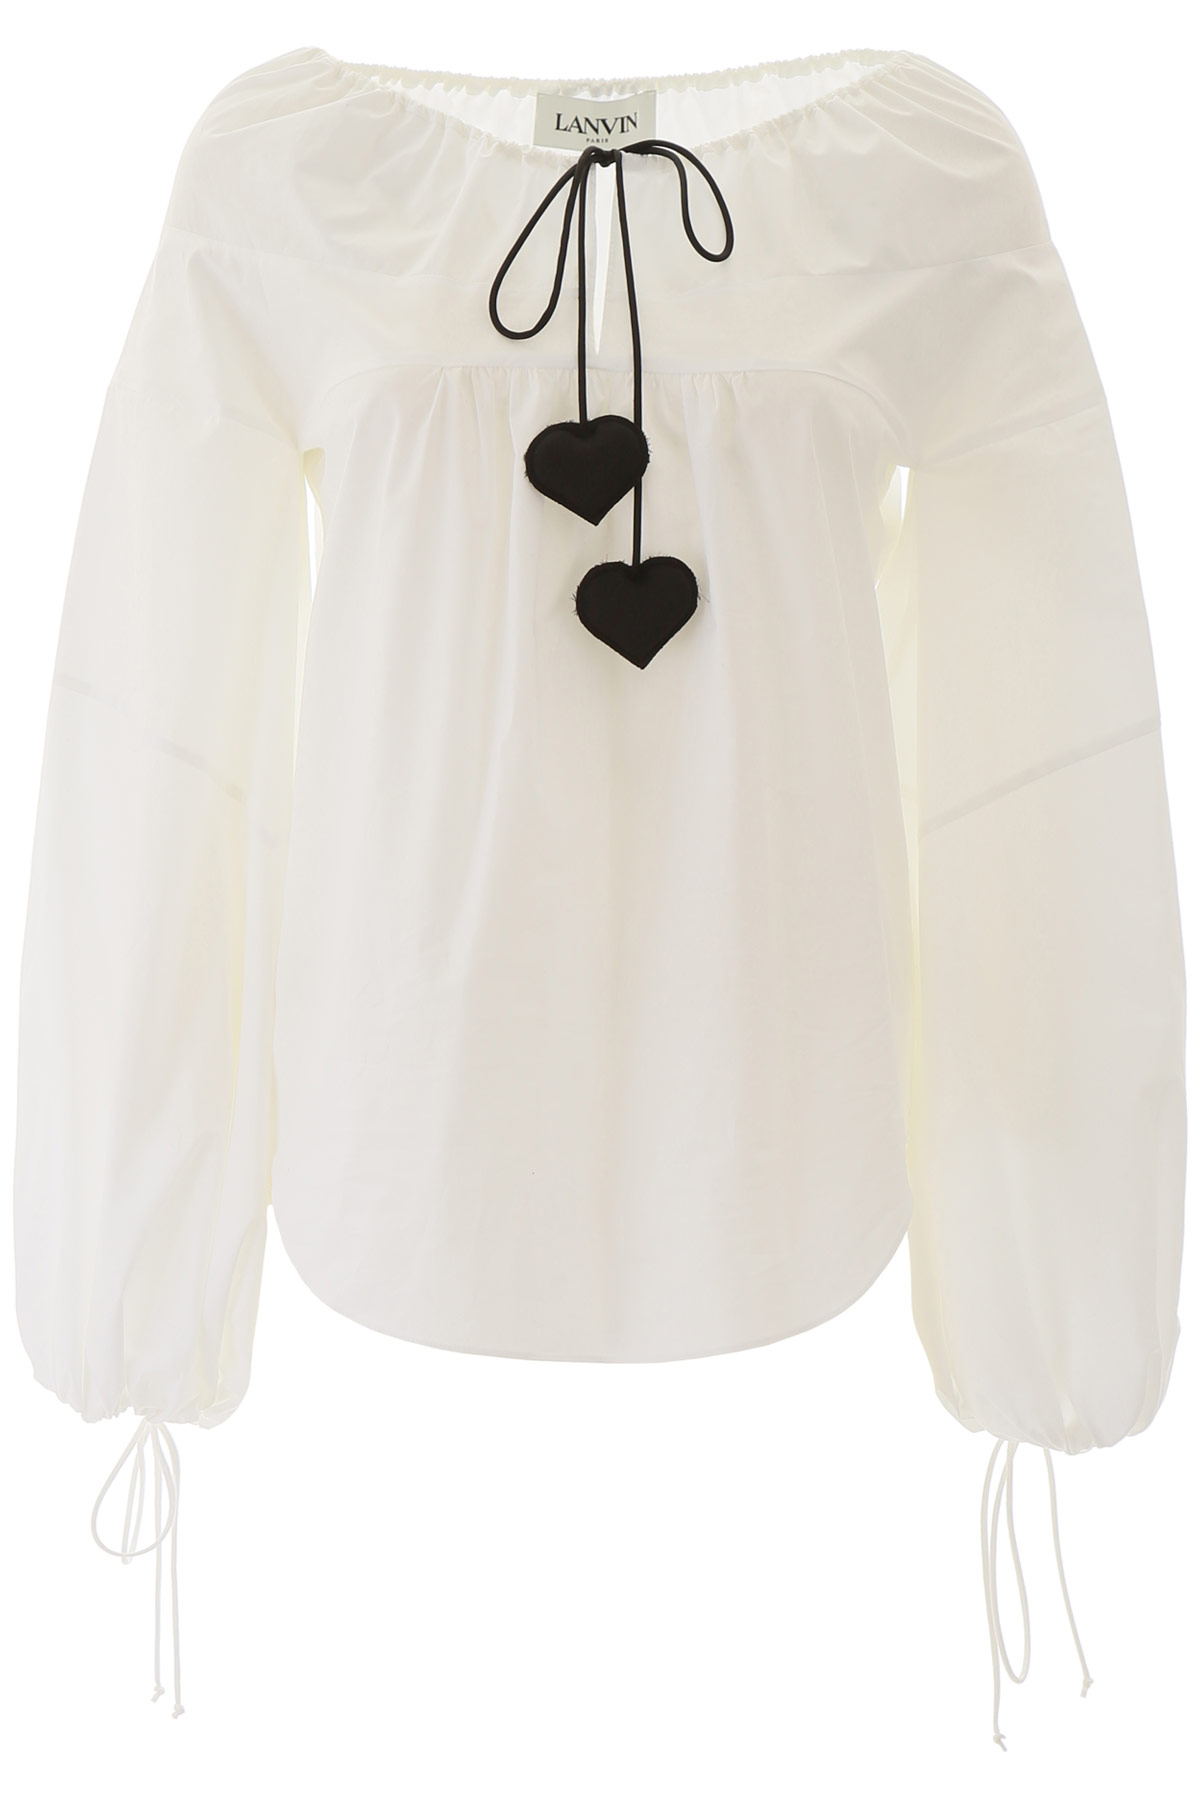 Lanvin BLOUSE WITH DRAWSTRING